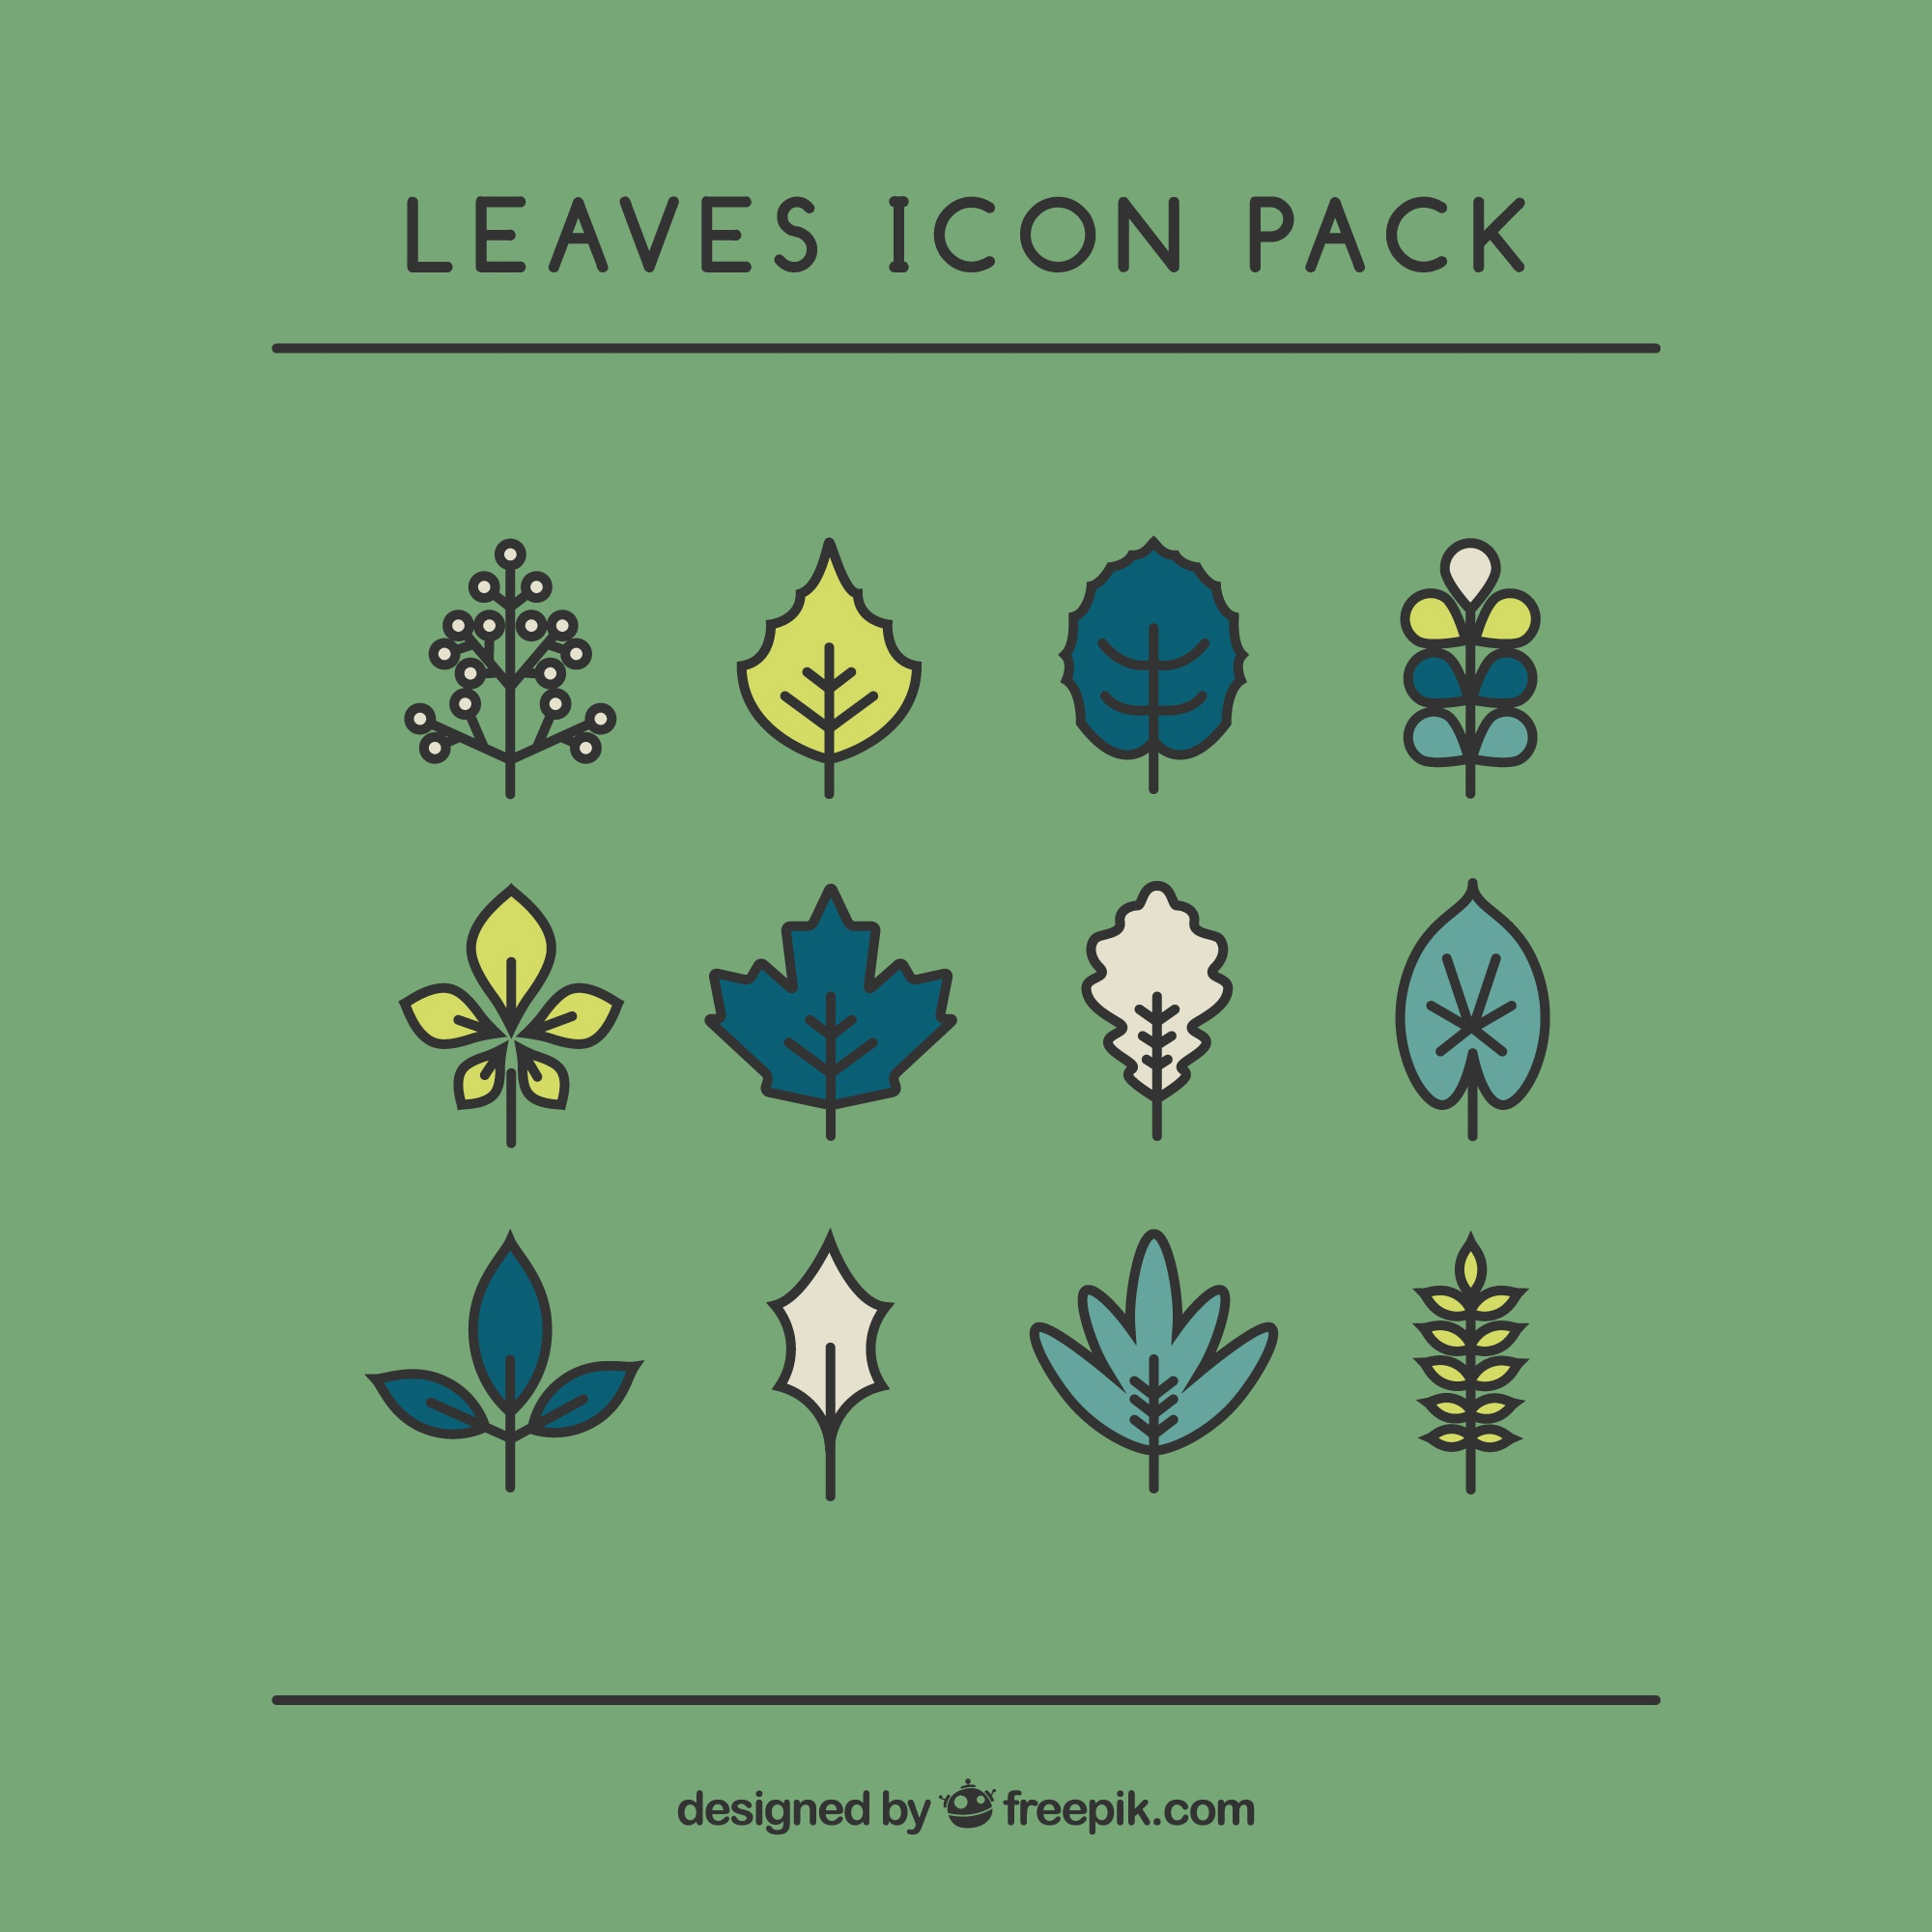 Handrawn Leaves Pack